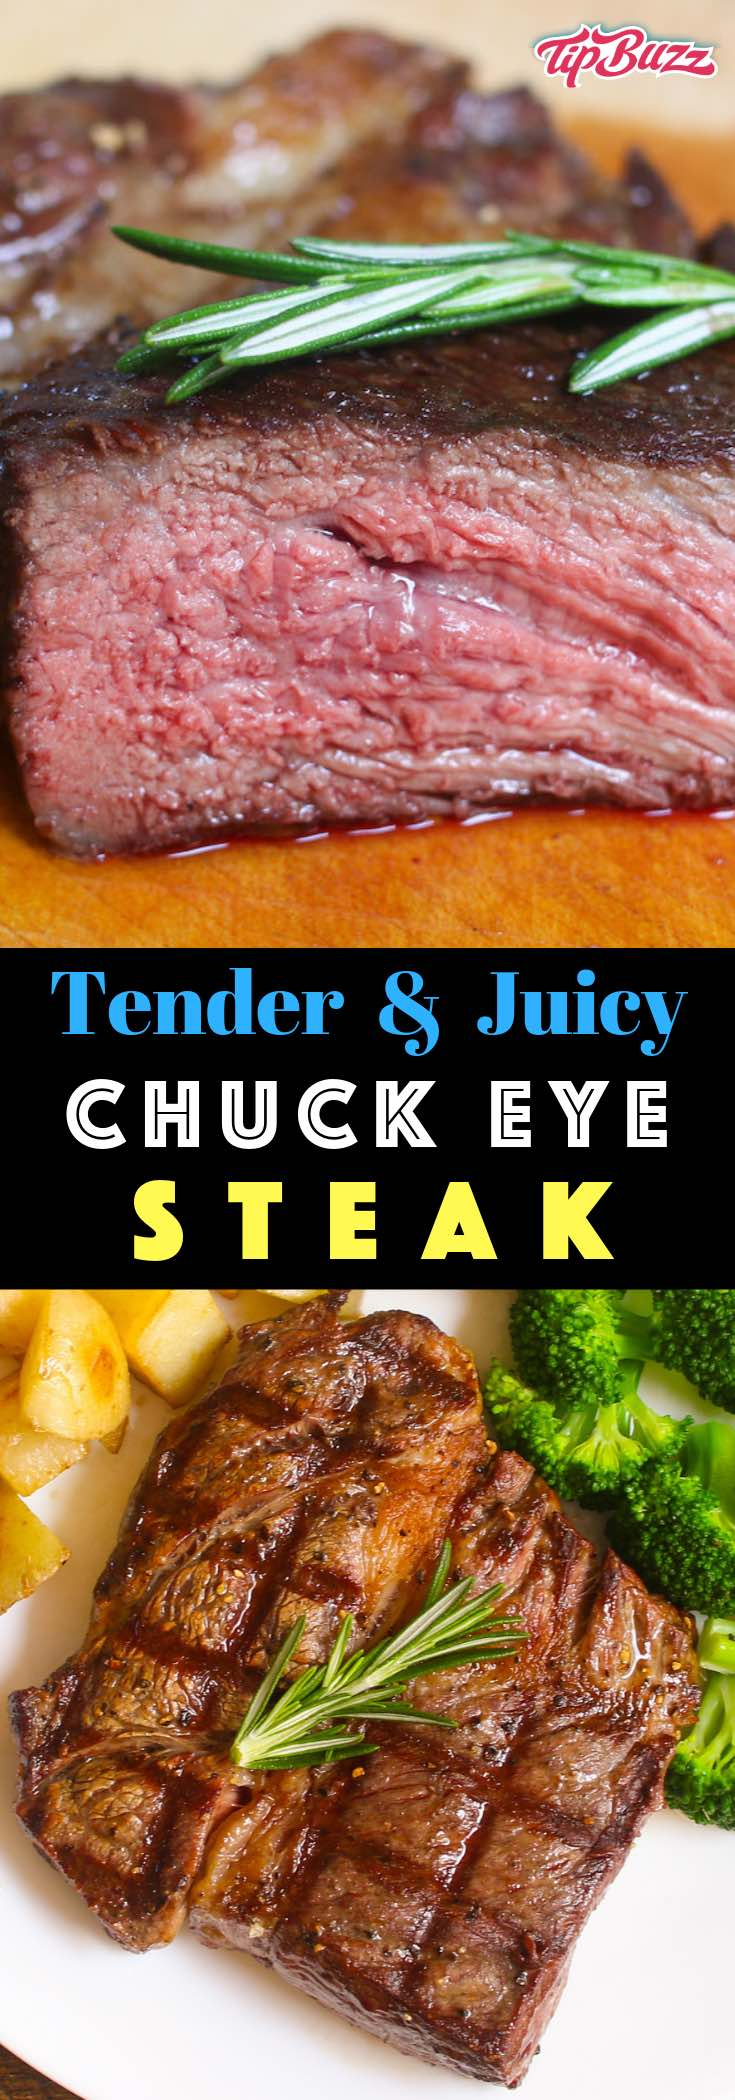 Chuck eye steak is a mouthwatering steak that's cut from the rib section right next to the rib eye but for the price of chuck. It's suitable for high-temperature cooking including grilling, pan frying and broiling